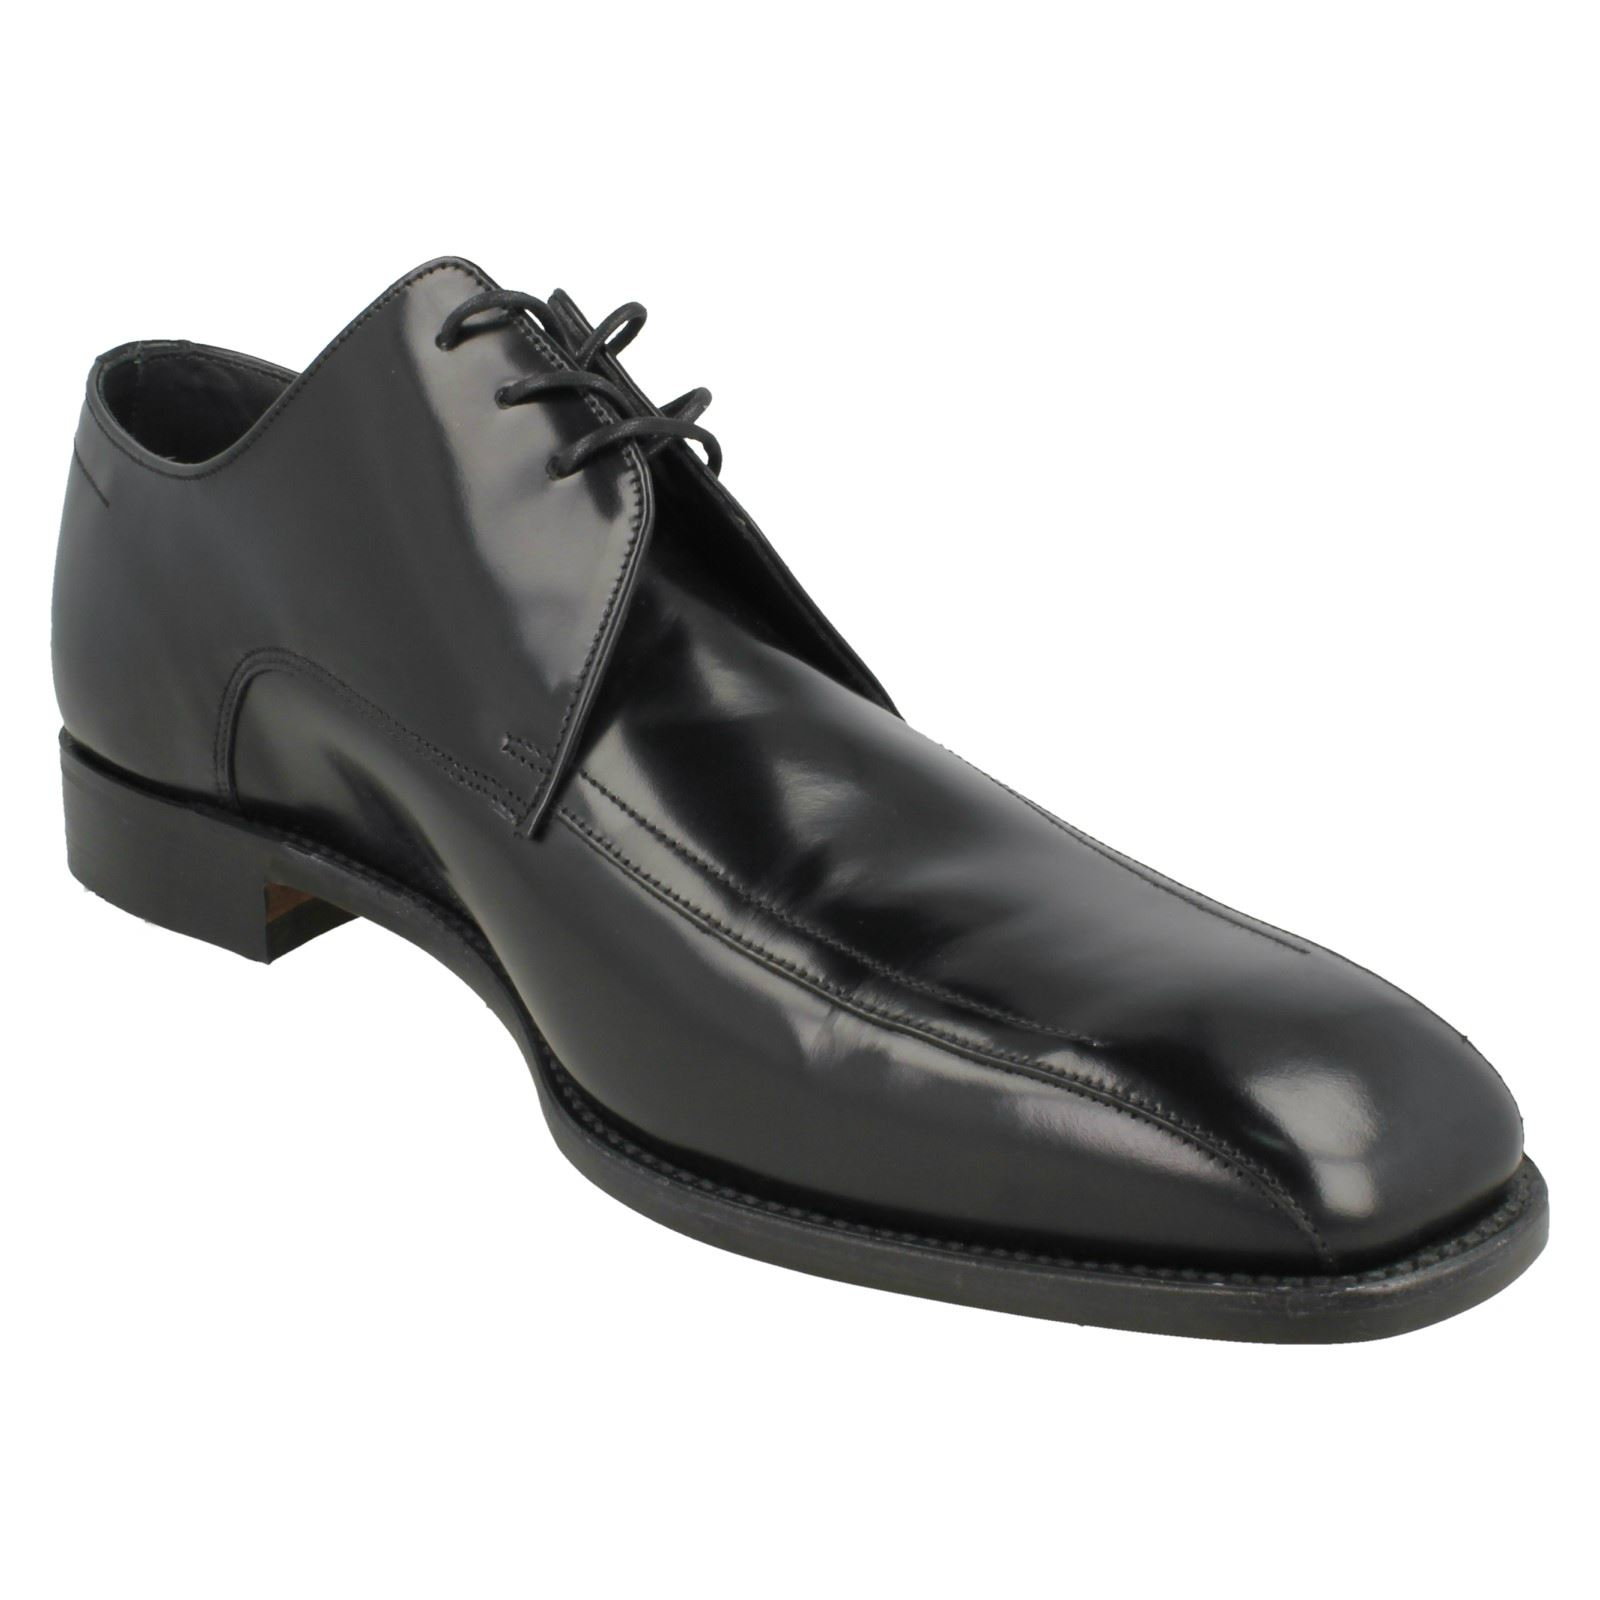 Mens Loake Oxford Comfortable Polished Leather Leather Leather Formal schuhe McQueen 0d35eb